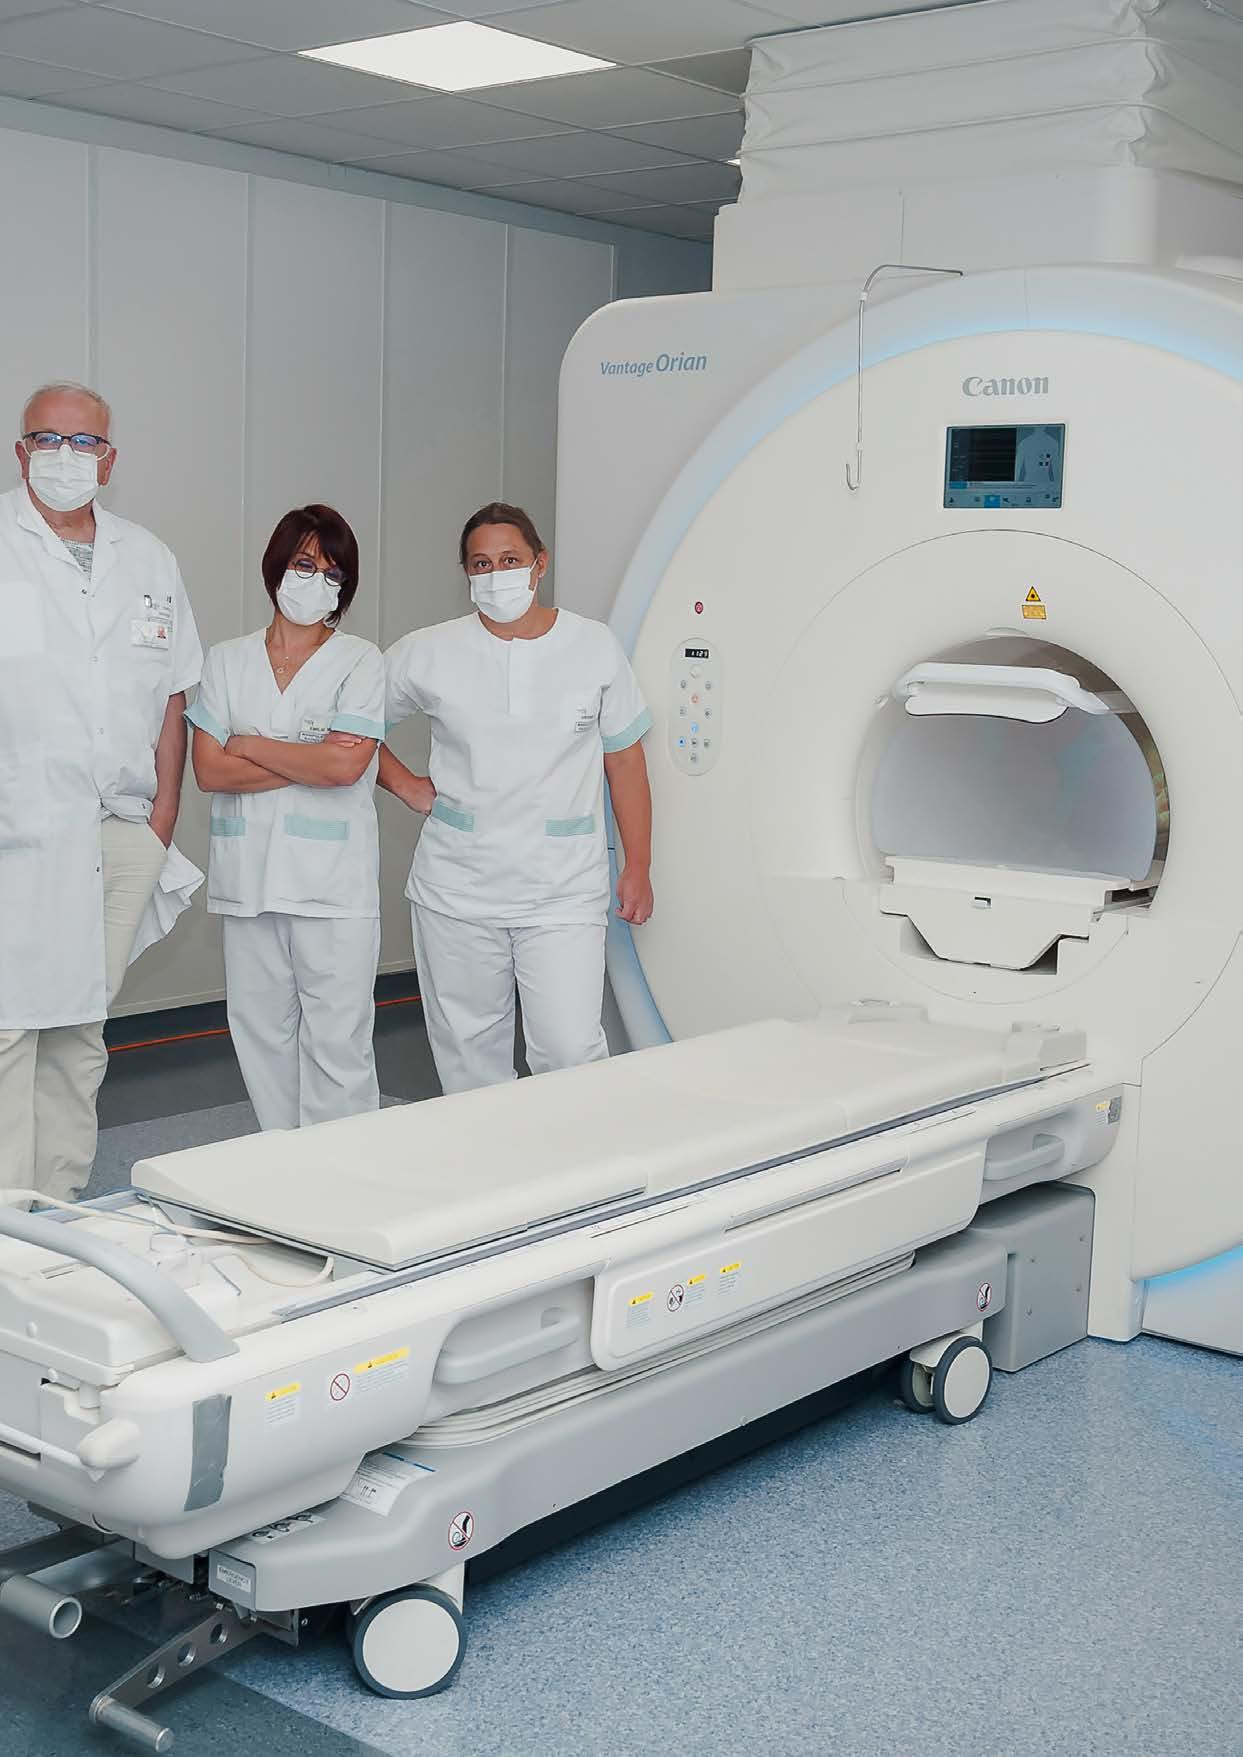 Page 42 of The MR Theatre Offers a Greater Sense of Escape and Improves Imaging Quality